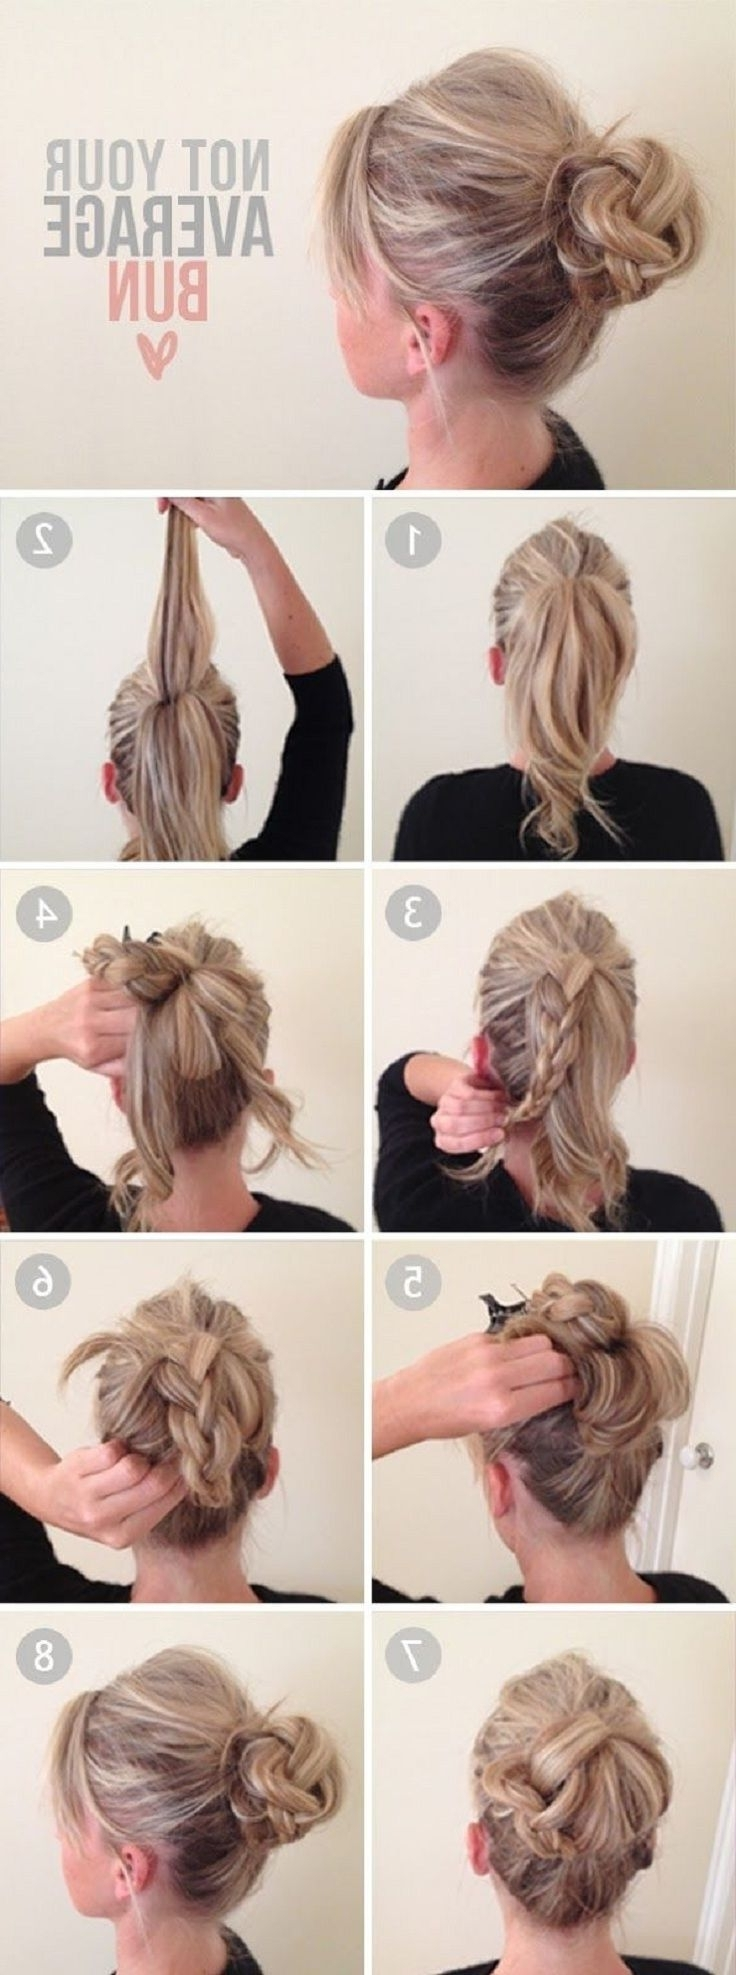 14 Amazing Double Braid Bun Hairstyles – Pretty Designs Within 2018 Double Braids Updo Hairstyles (View 1 of 15)